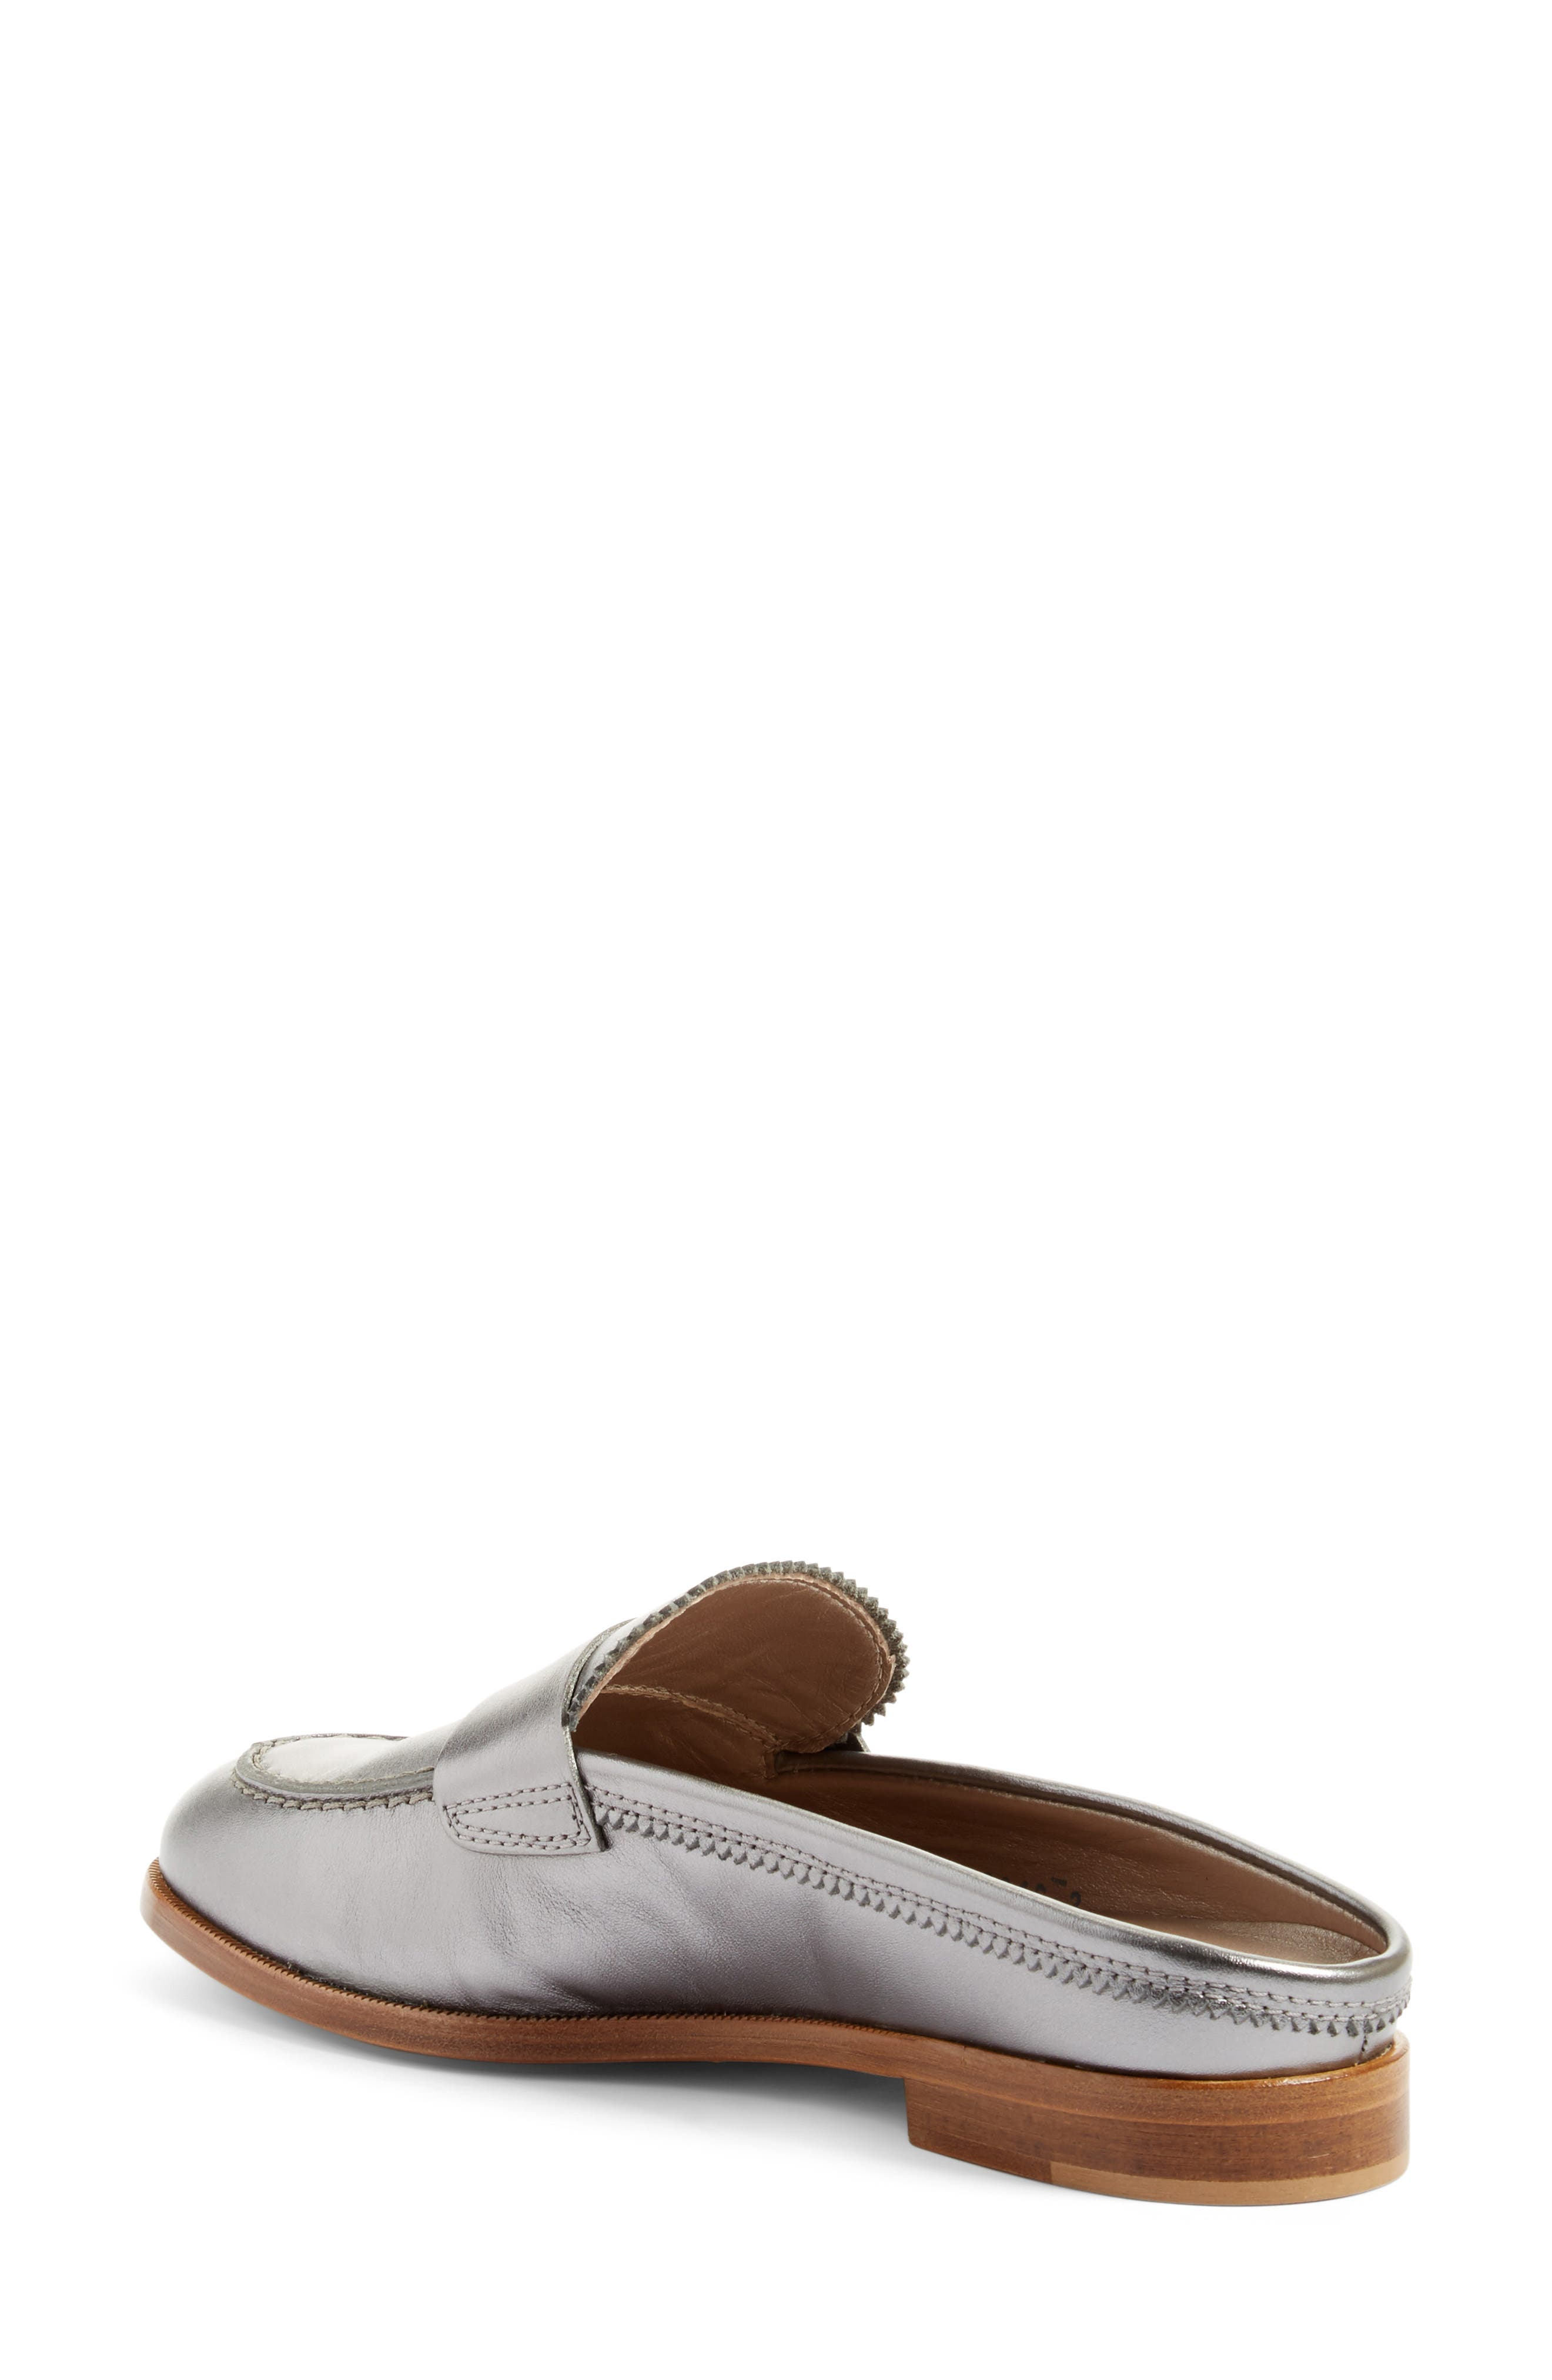 Penny Loafer Mule,                             Alternate thumbnail 6, color,